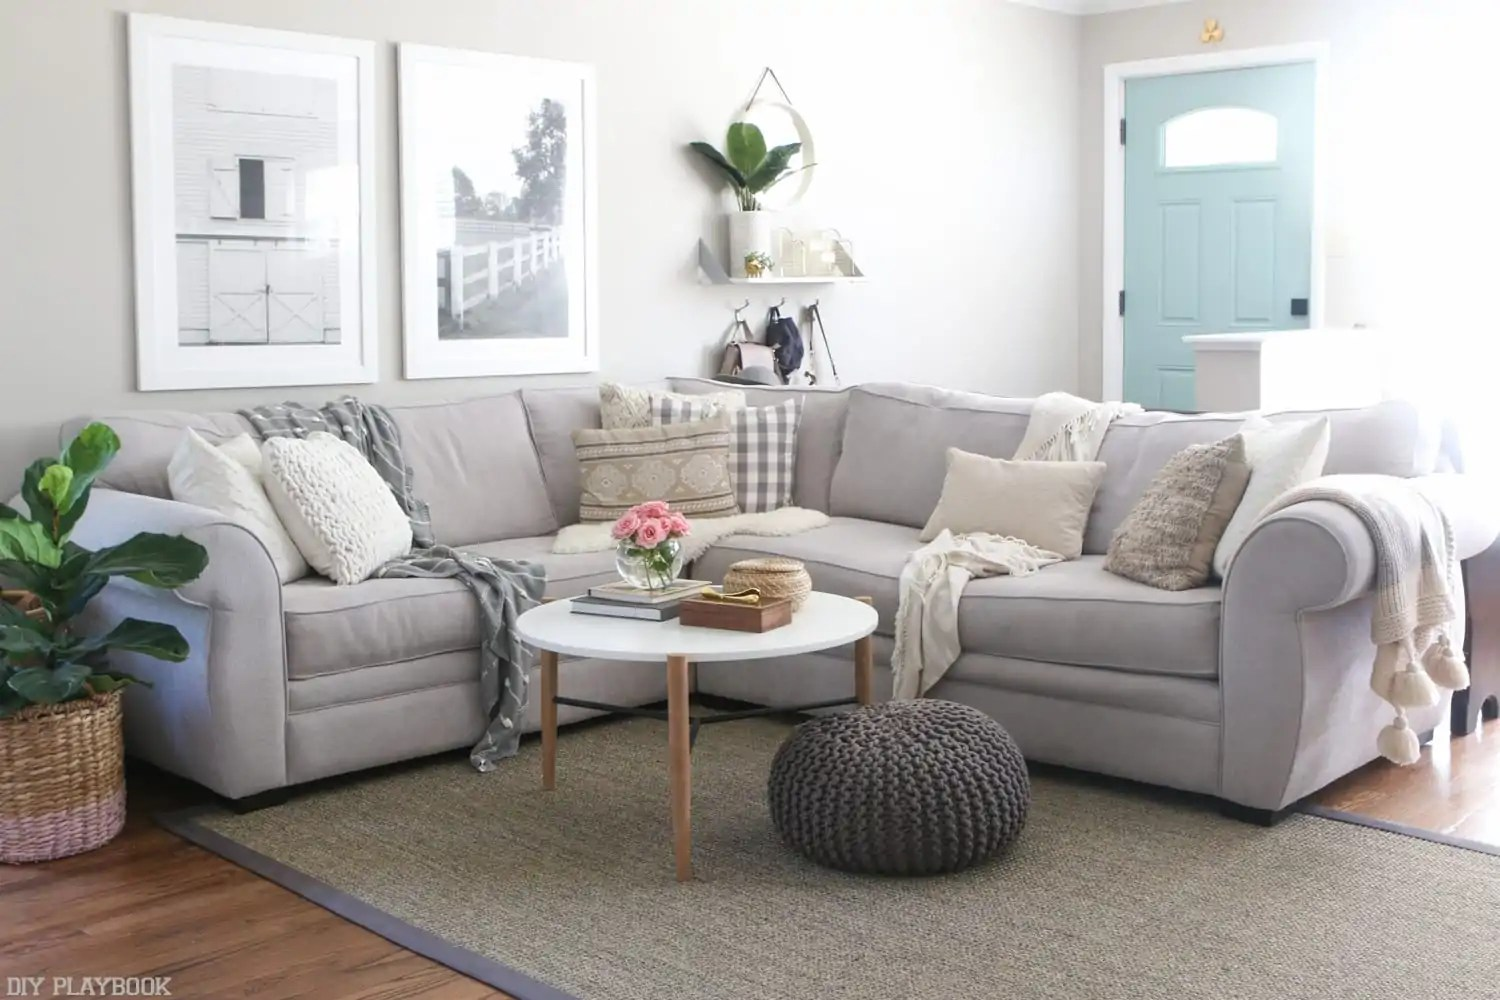 Big Sofa Back Cushions How To Clean Couch Cushions In Four Easy Steps The Diy Playbook